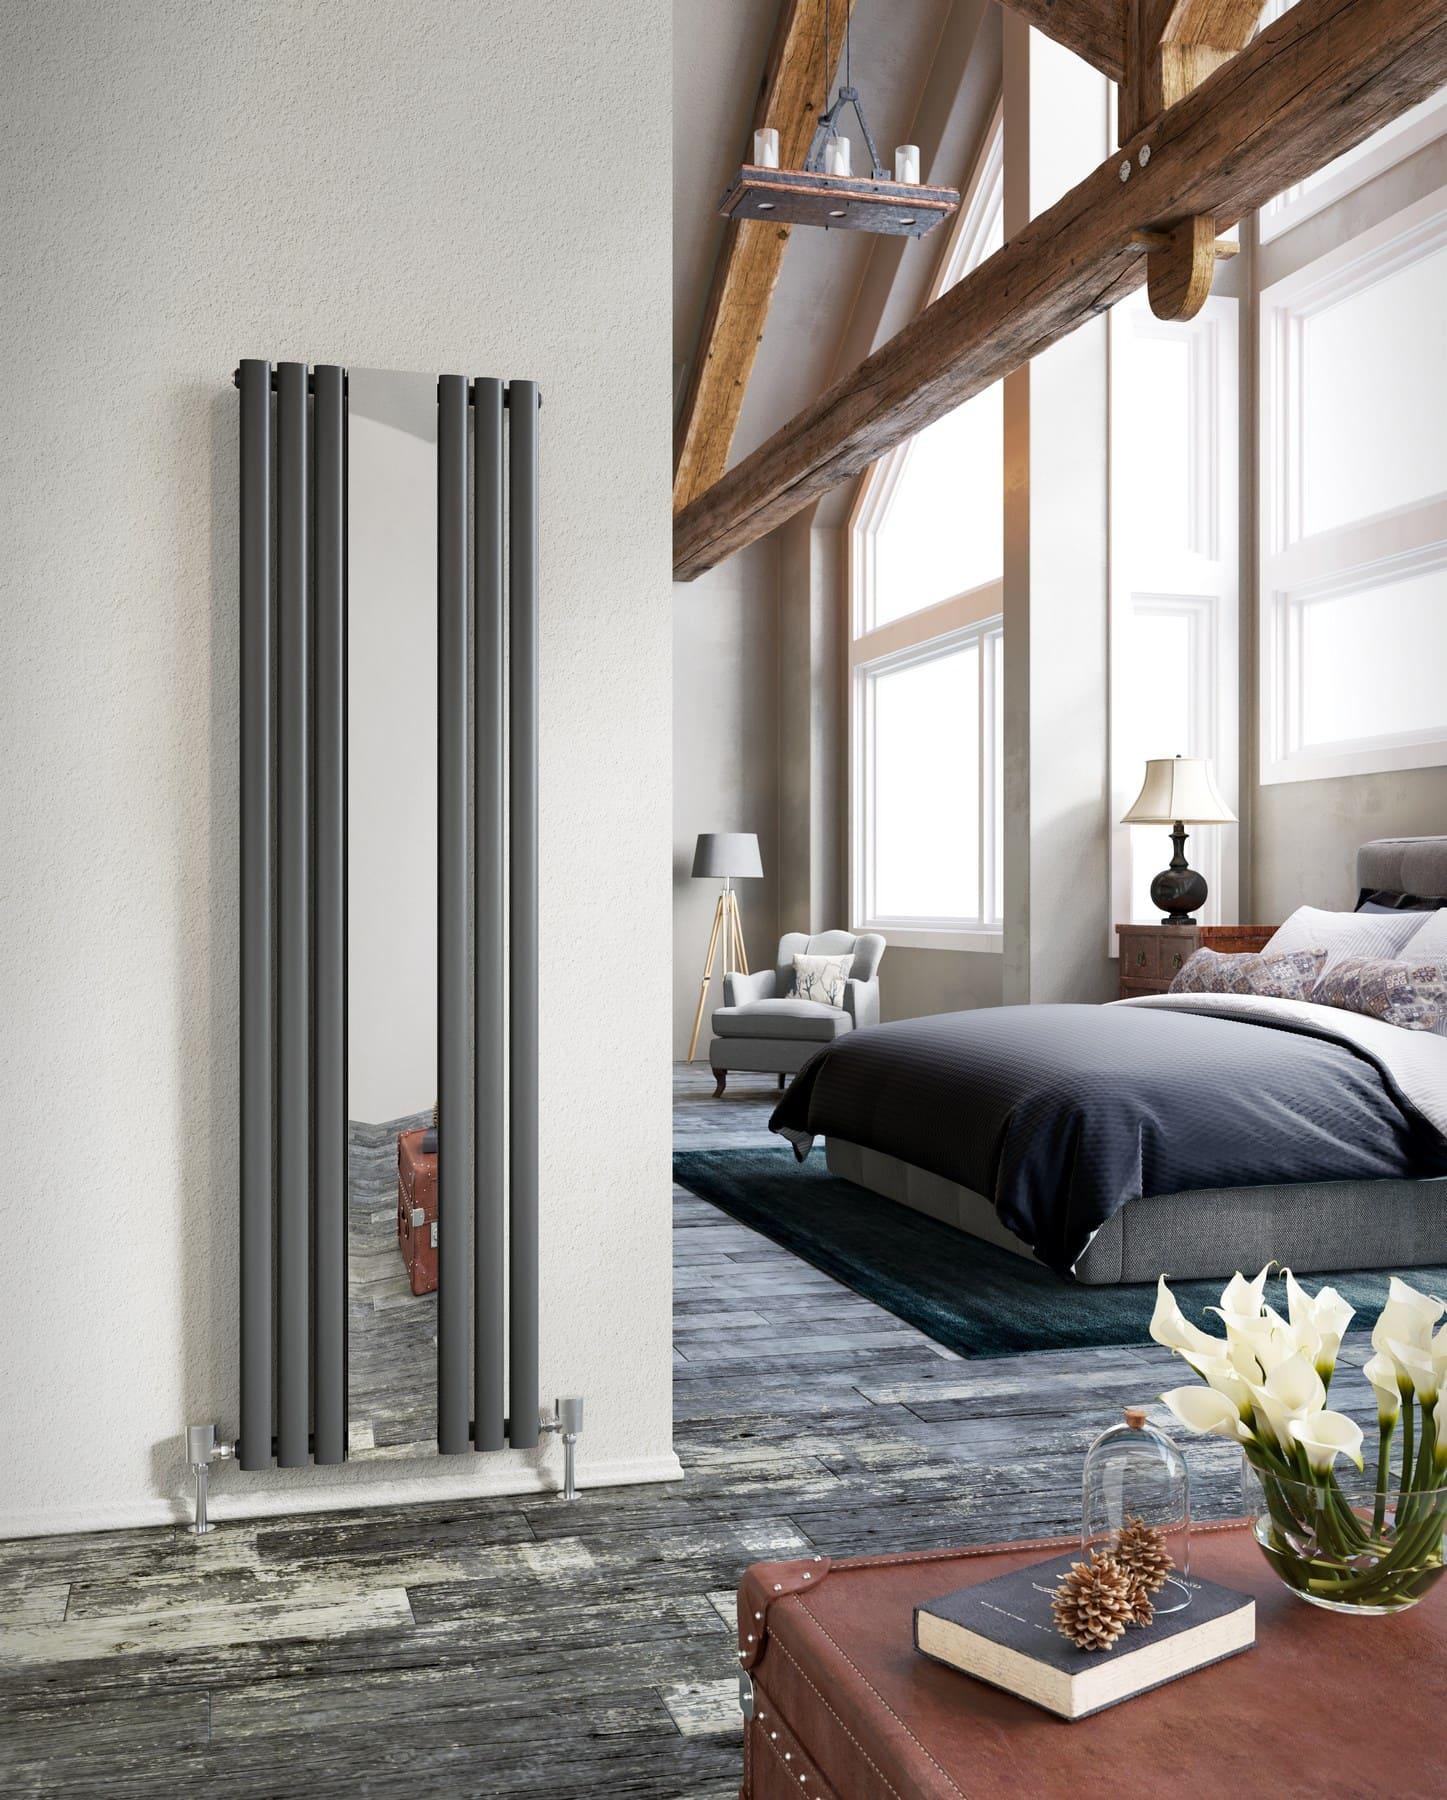 Mirrored Radiators